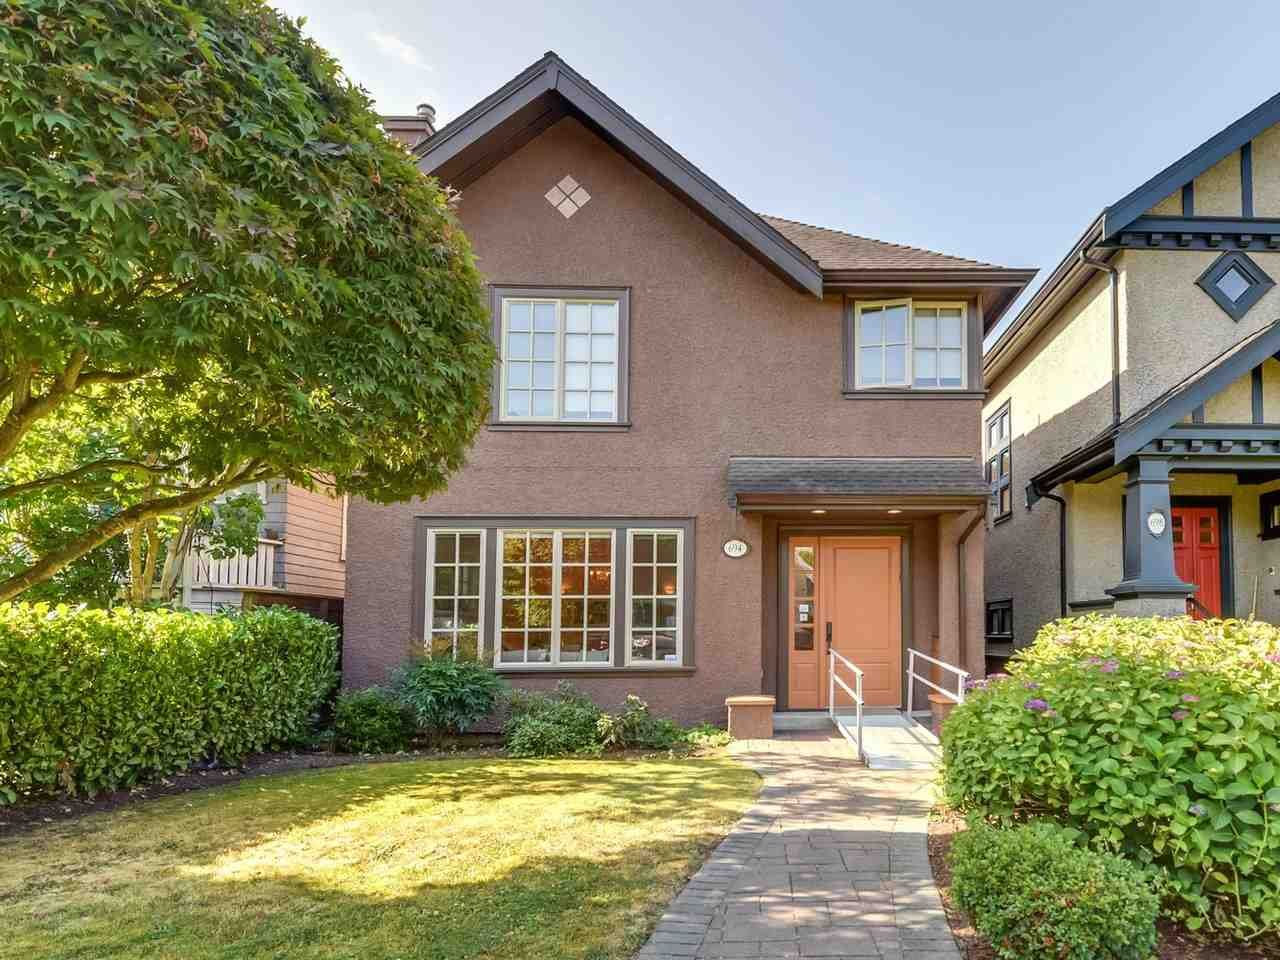 Photo 1: Photos: 694 W 19TH AVENUE in Vancouver: Cambie House for sale (Vancouver West)  : MLS®# R2186365